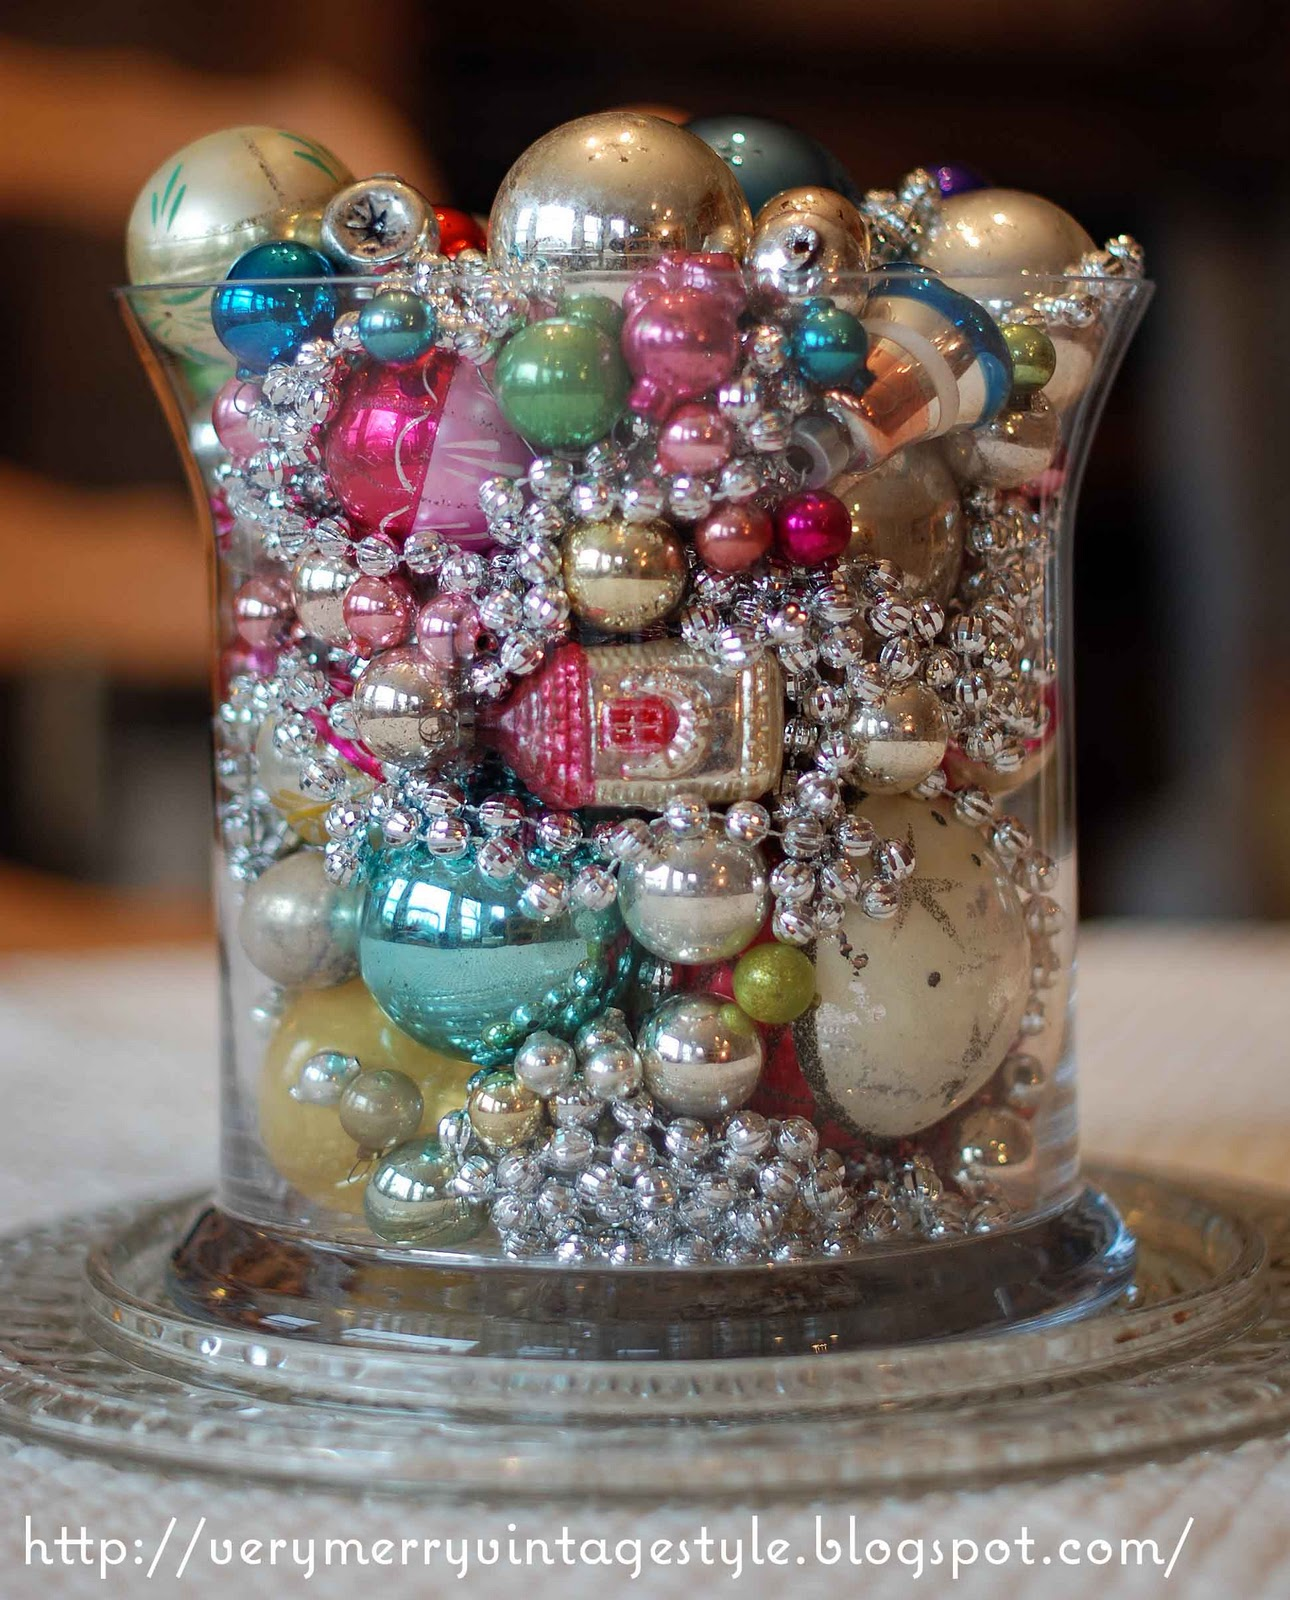 Old Style Christmas Decorations: Very Merry Vintage Syle: Make A Christmas Centerpiece With